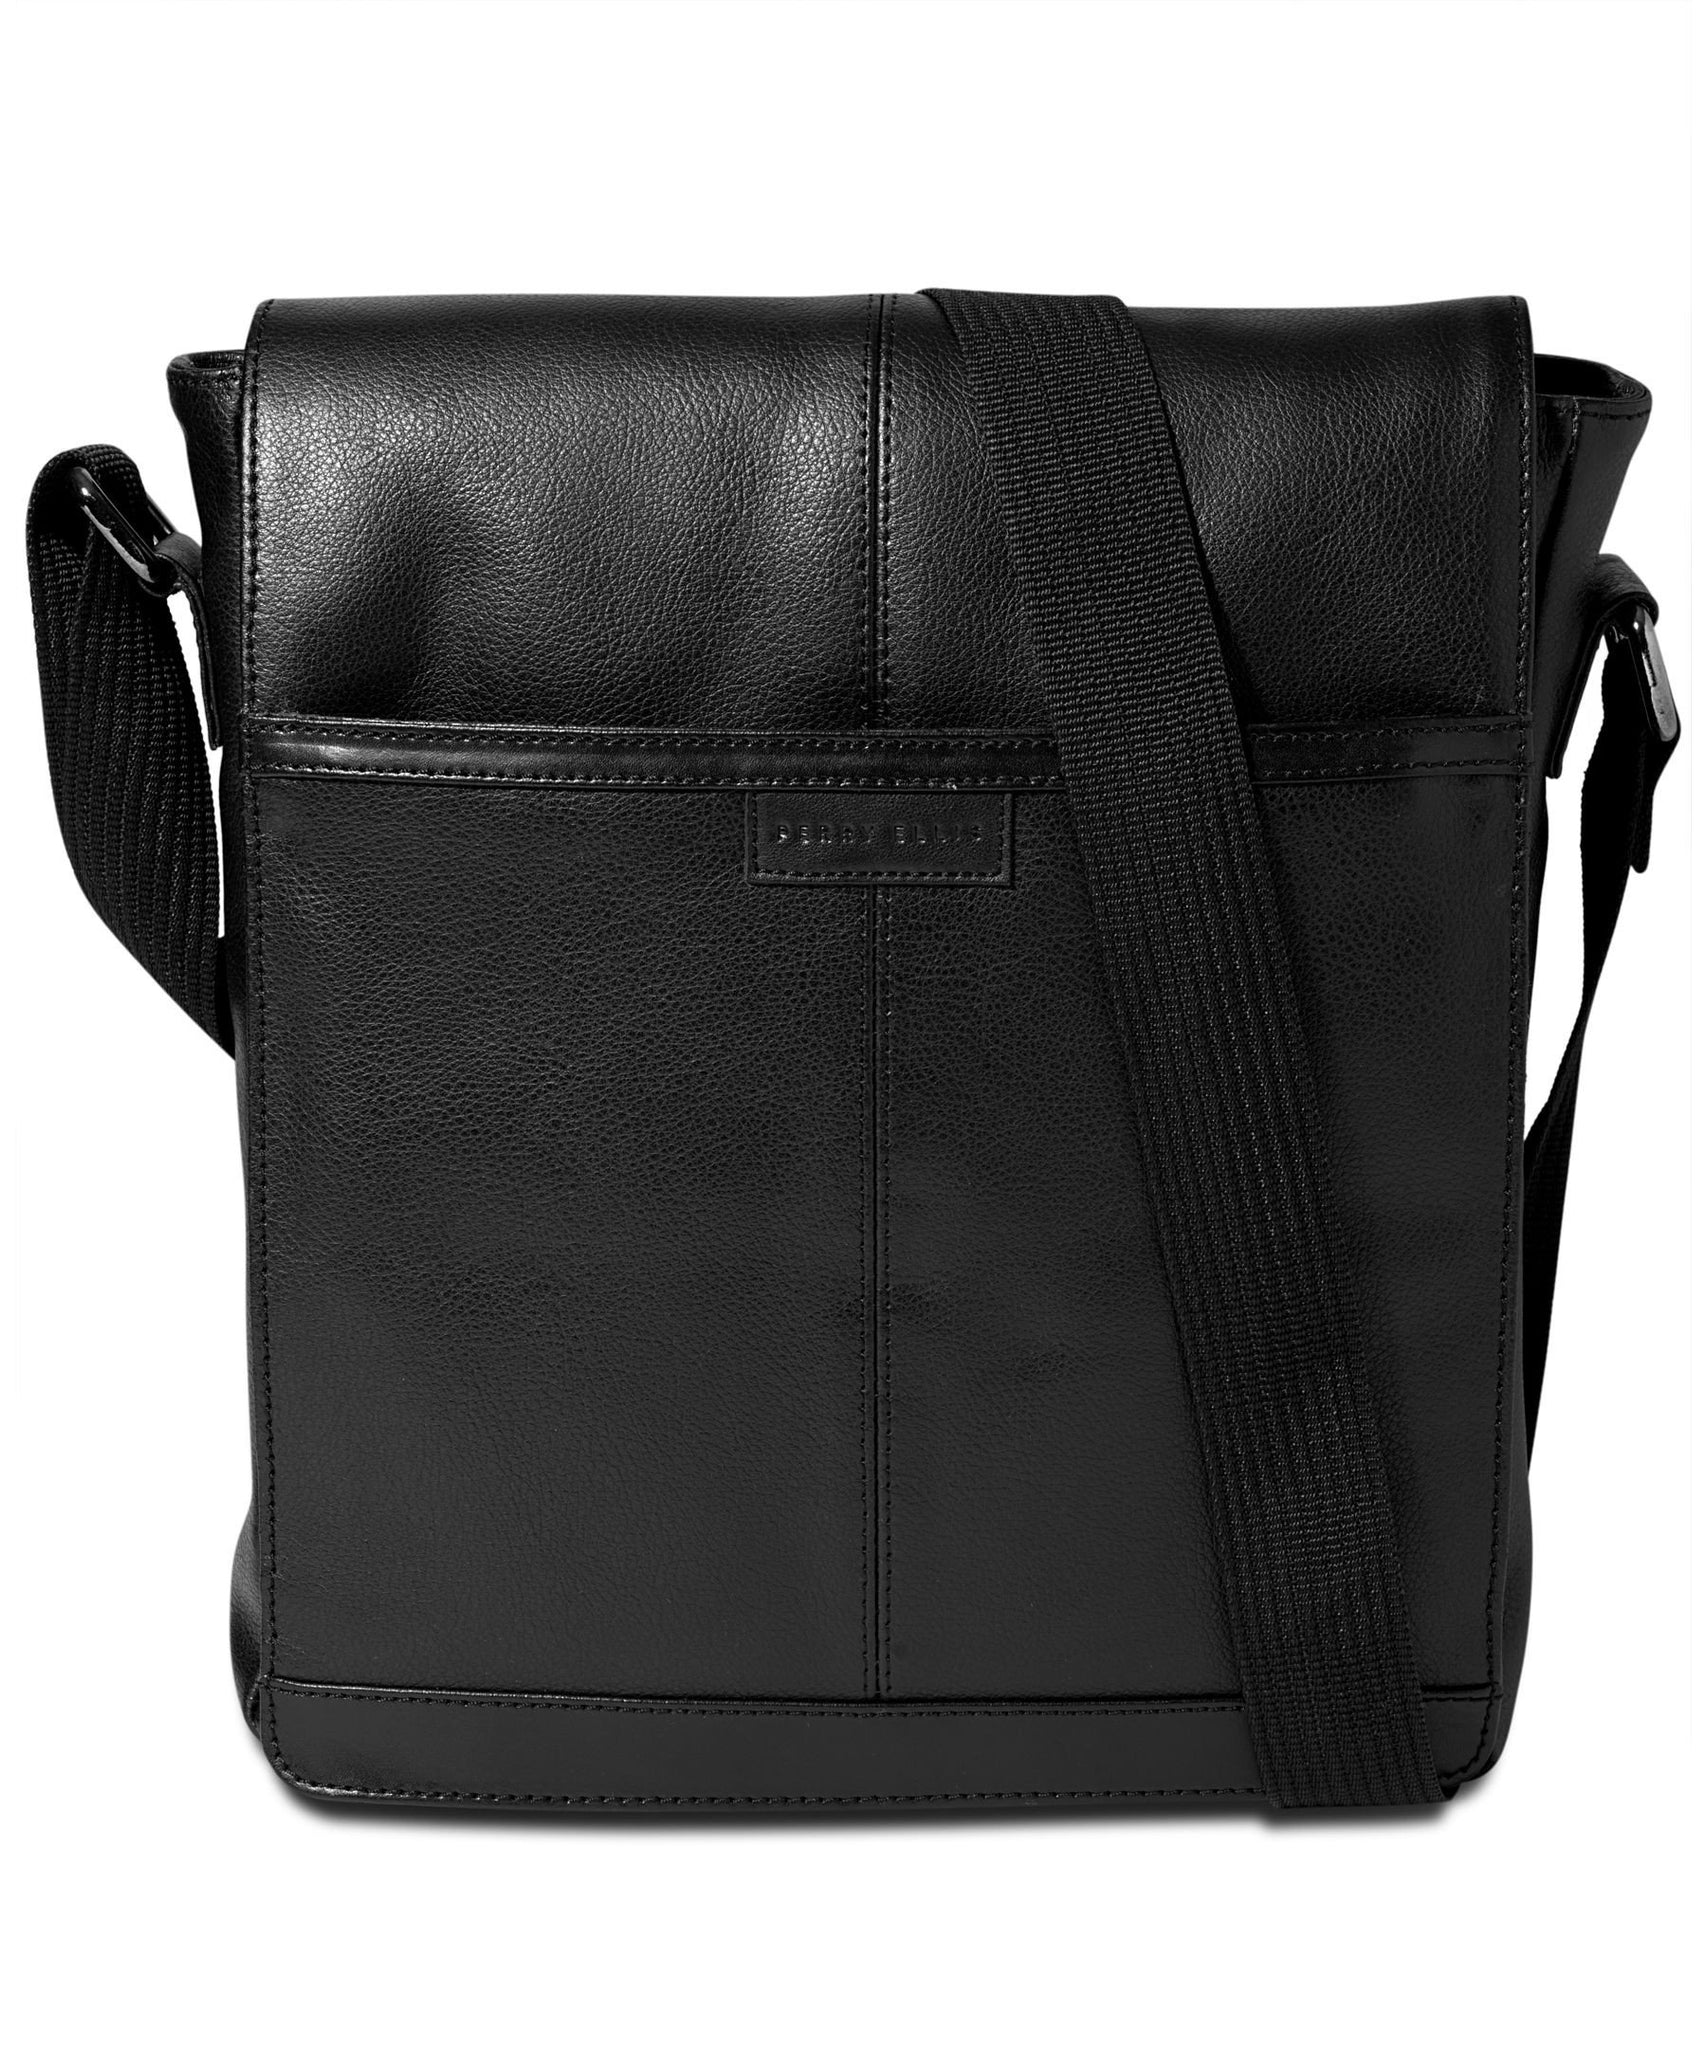 Perry Ellis Northsouth Leather Cross Body Bag Black One Size